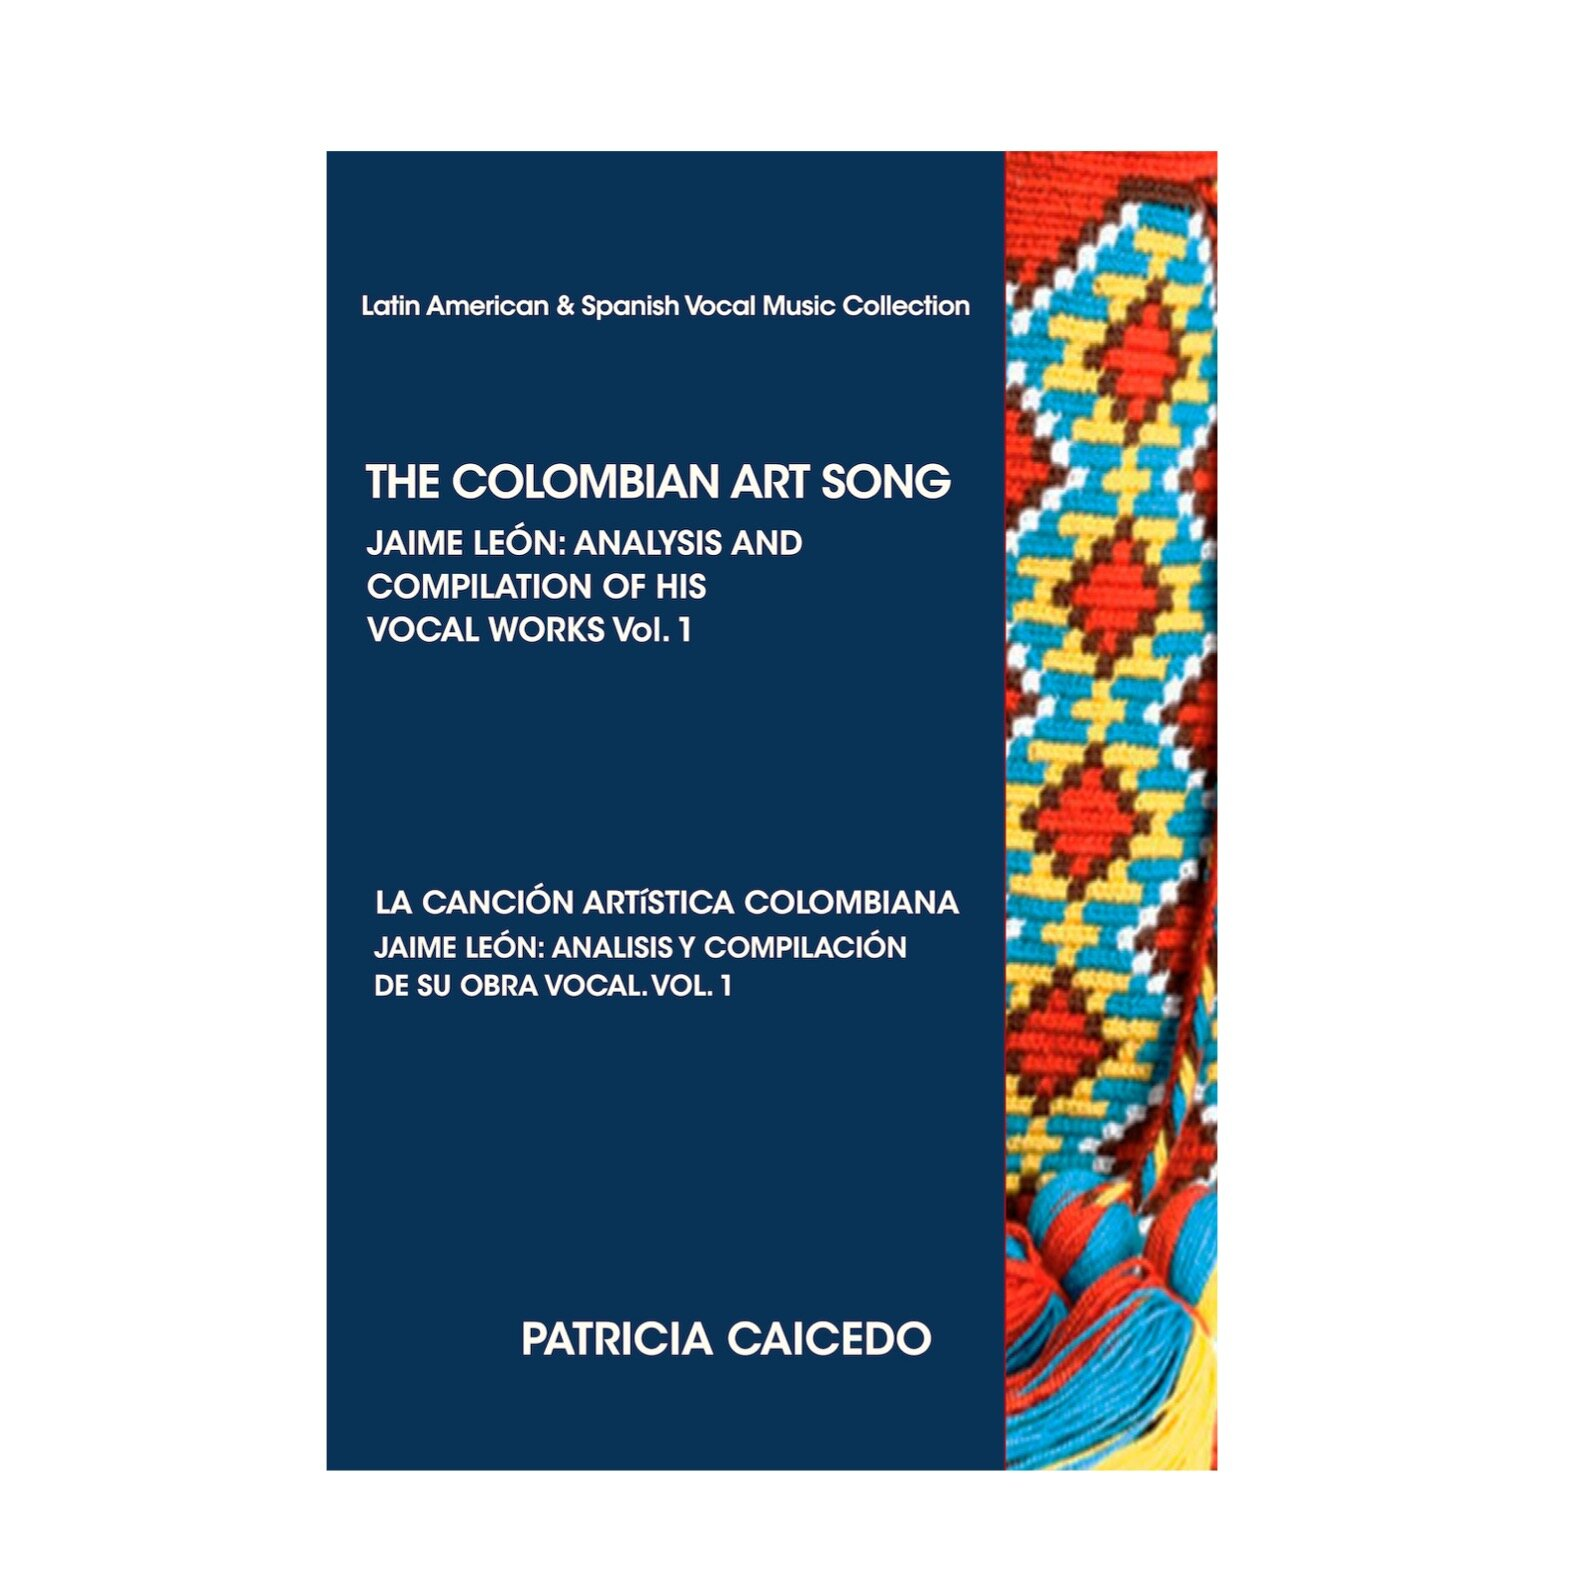 THE COLOMBIAN ART SONG Jaime León: Analysis and compilation of his vocal works. Vol.1 -